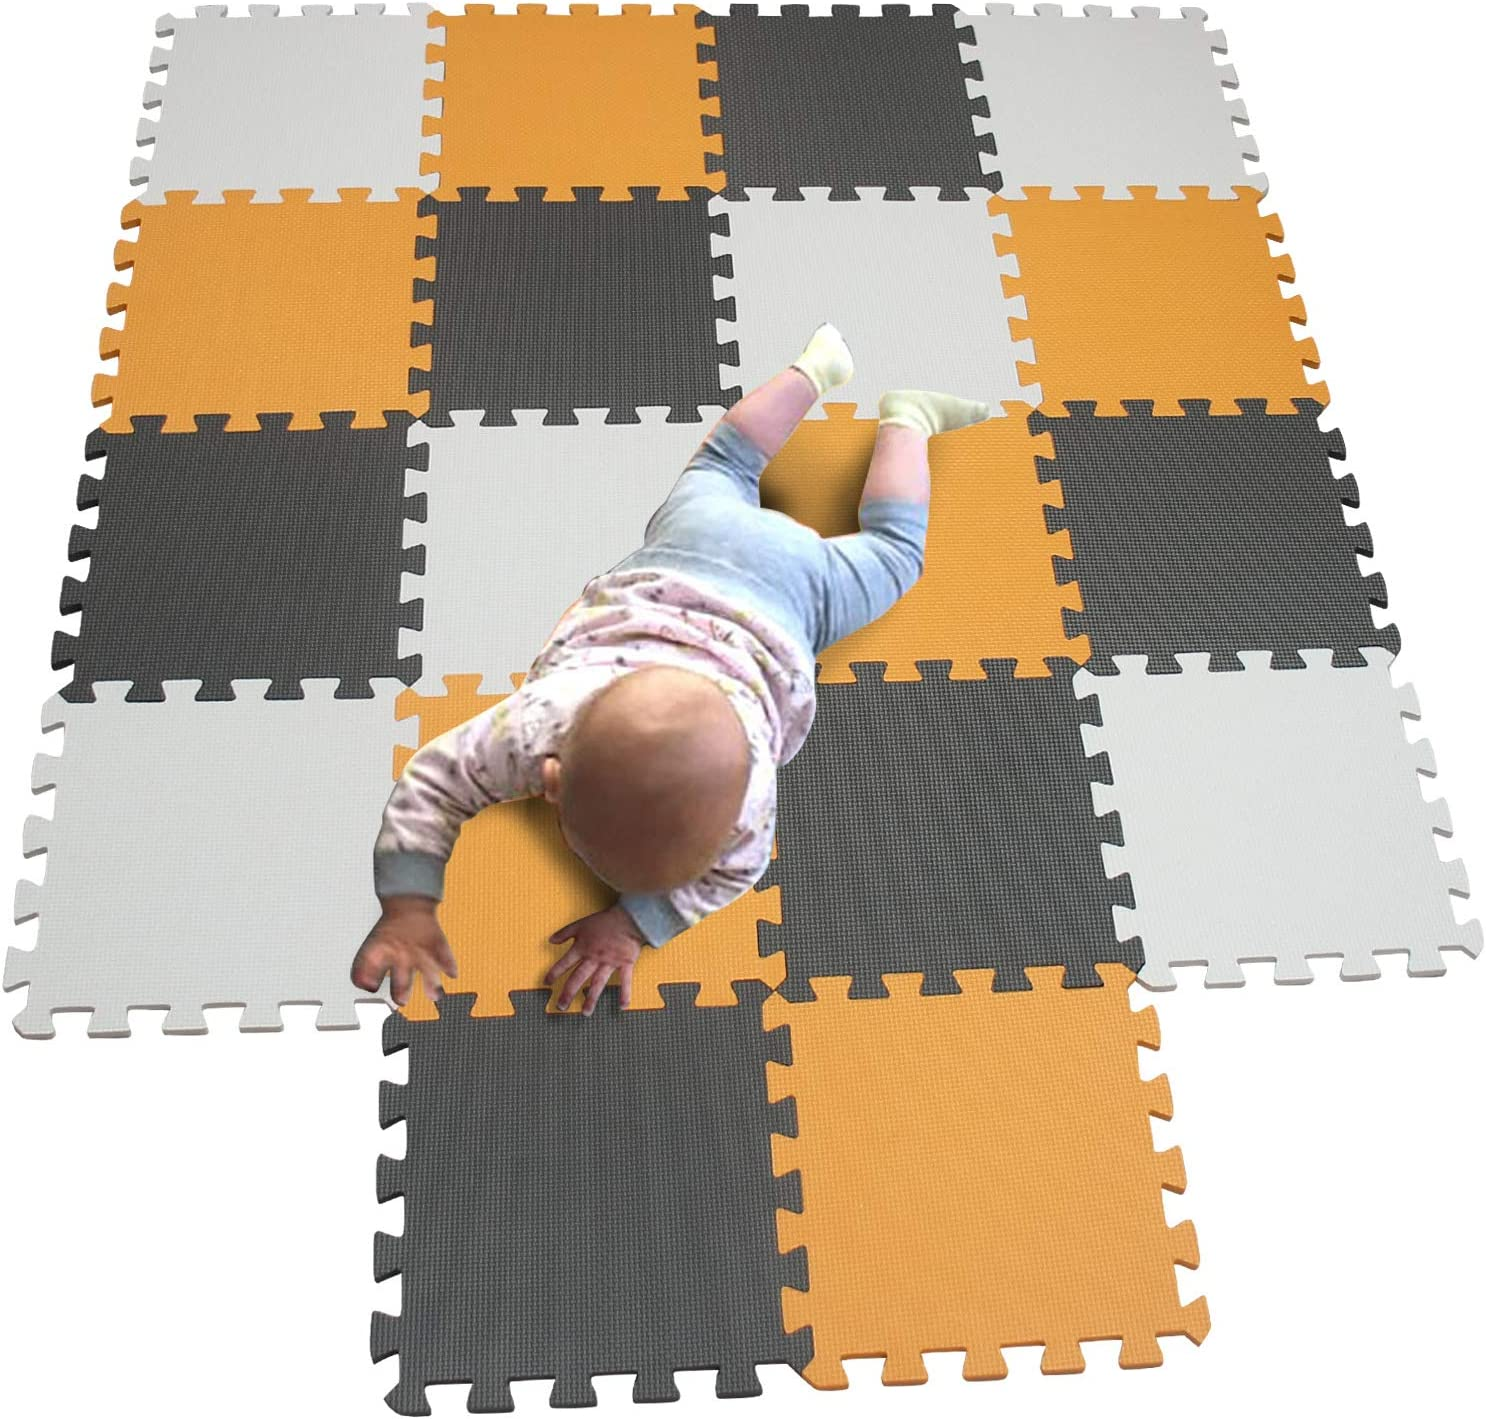 MQIAOHAM Children Puzzle mat Squares Tiles Raleigh Mall Play Bab Clearance SALE Limited time